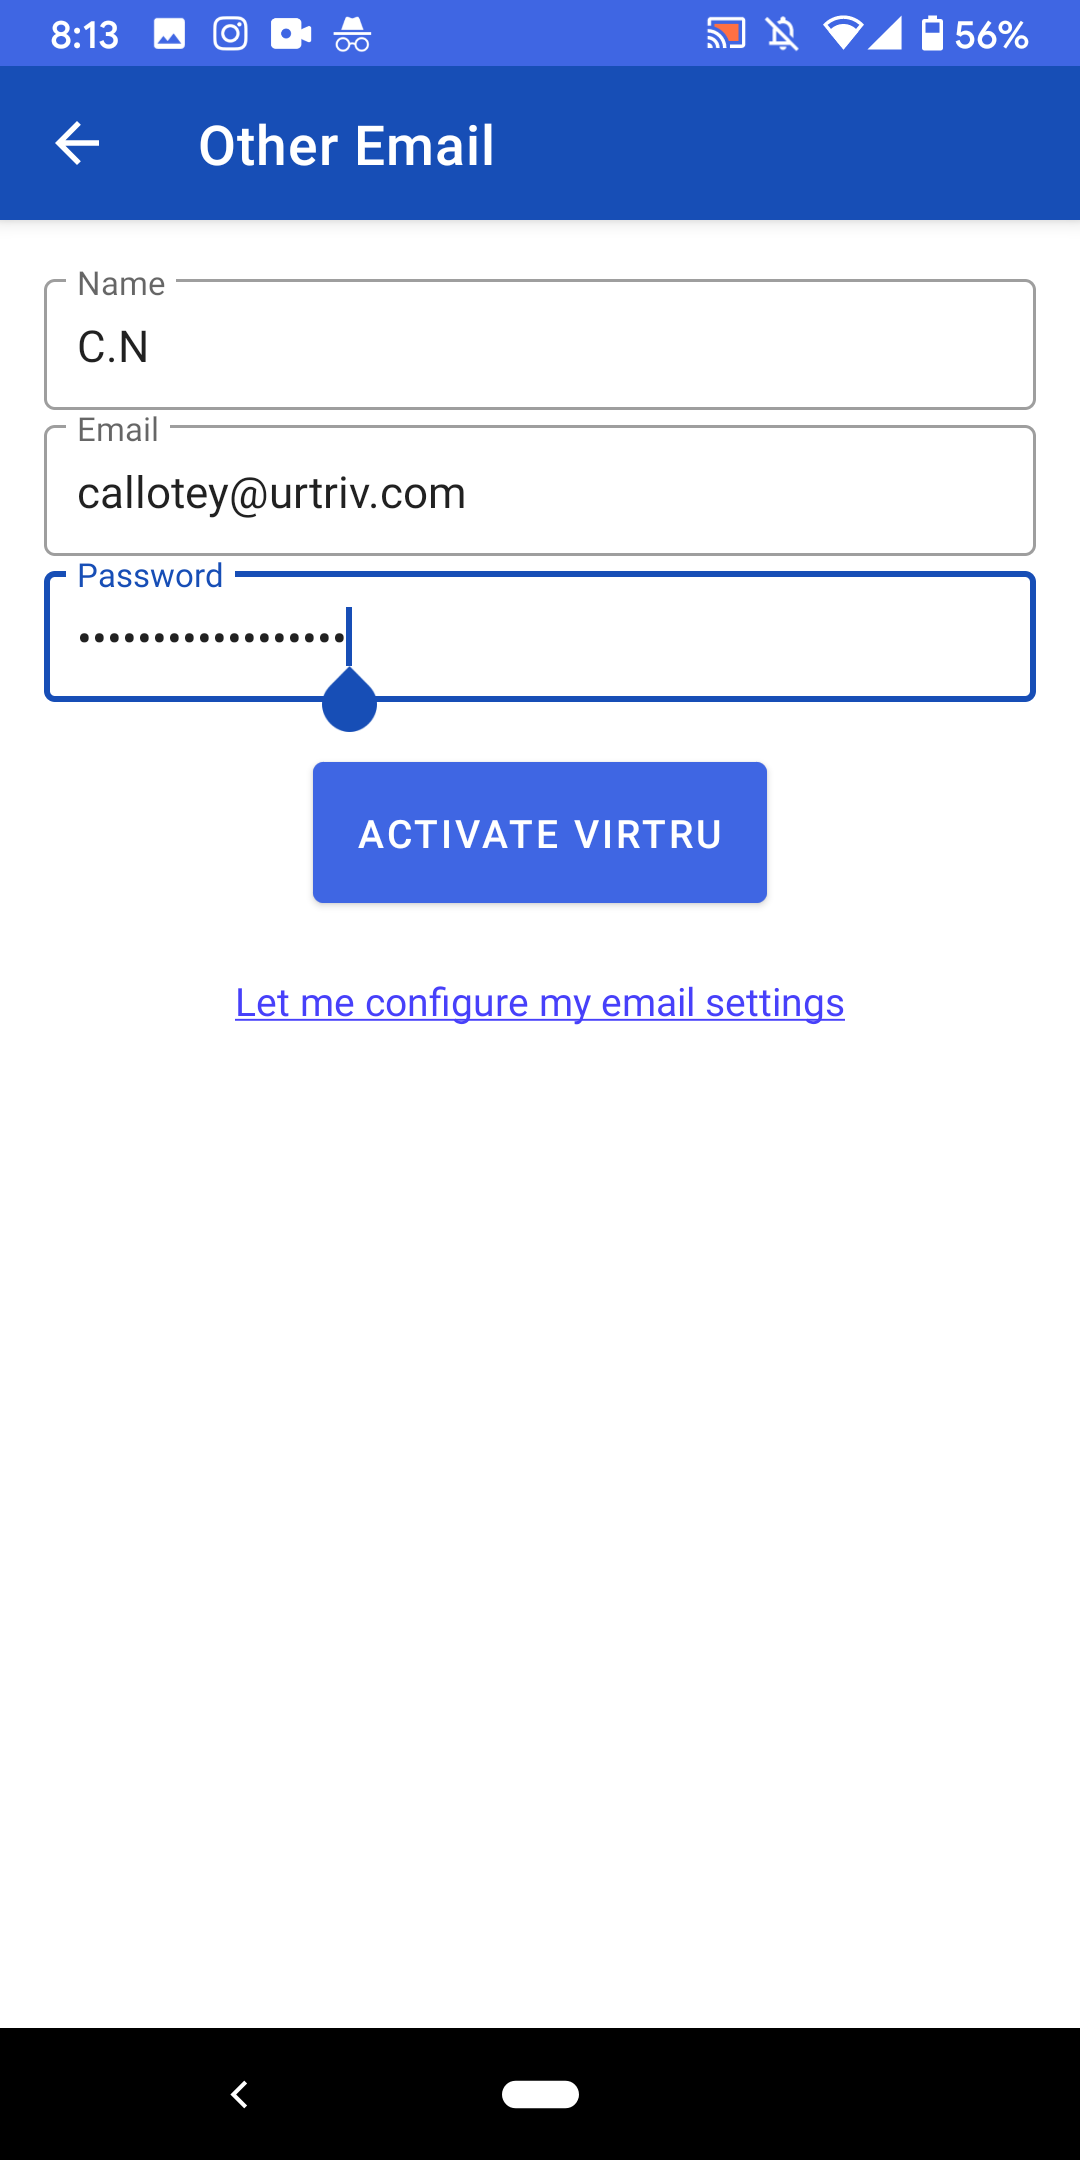 Other email settings fill out